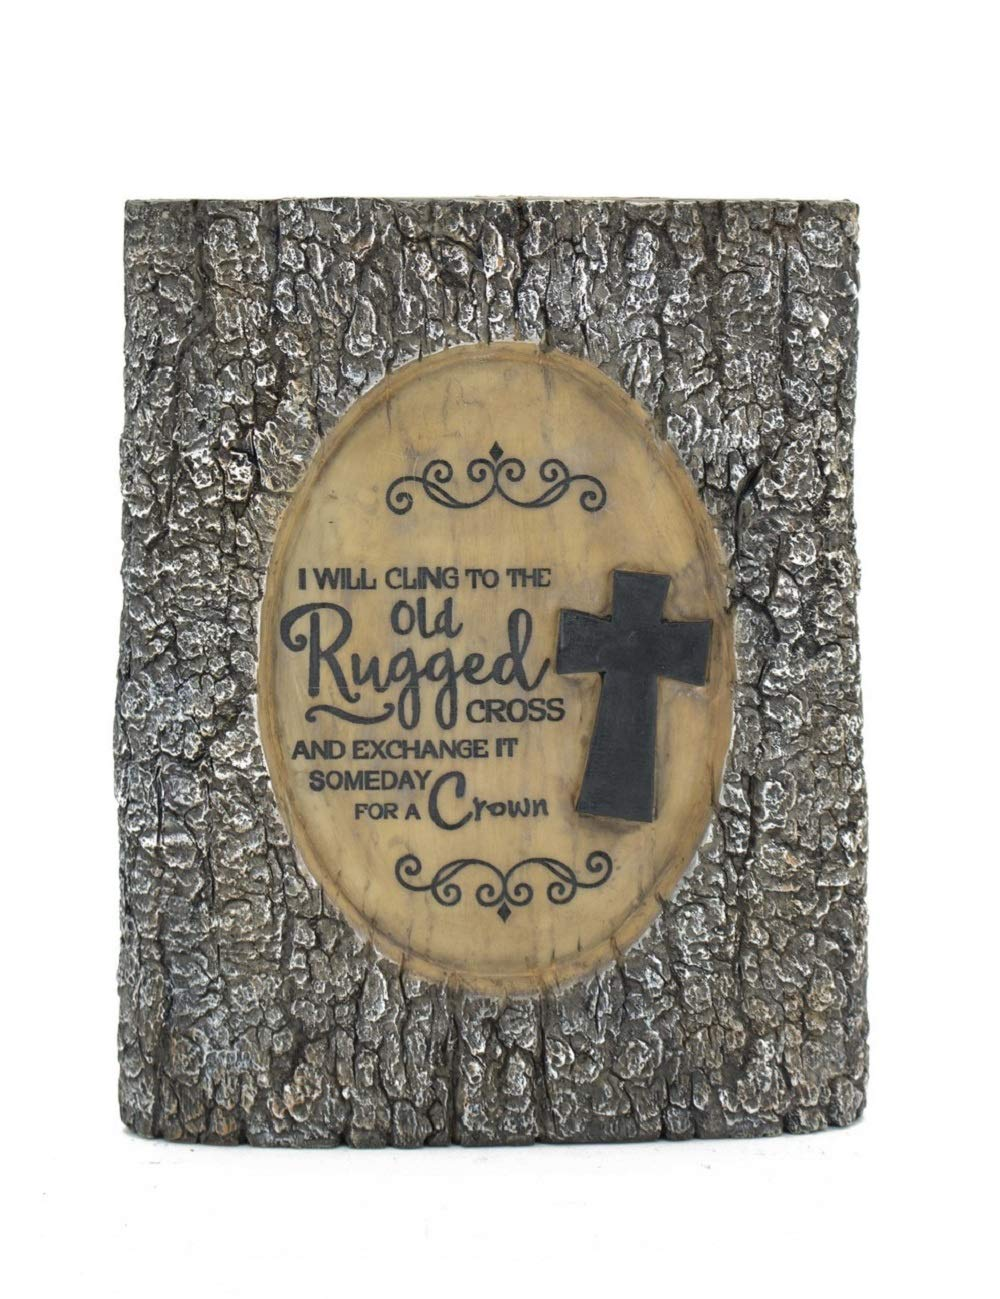 9.25 X 1.5 X 11.25 Tremont Floral Resin BARK Plaque Old Rugged Cross Roll Over Image to Zoom in Resin BARK Plaque Amazing Grace